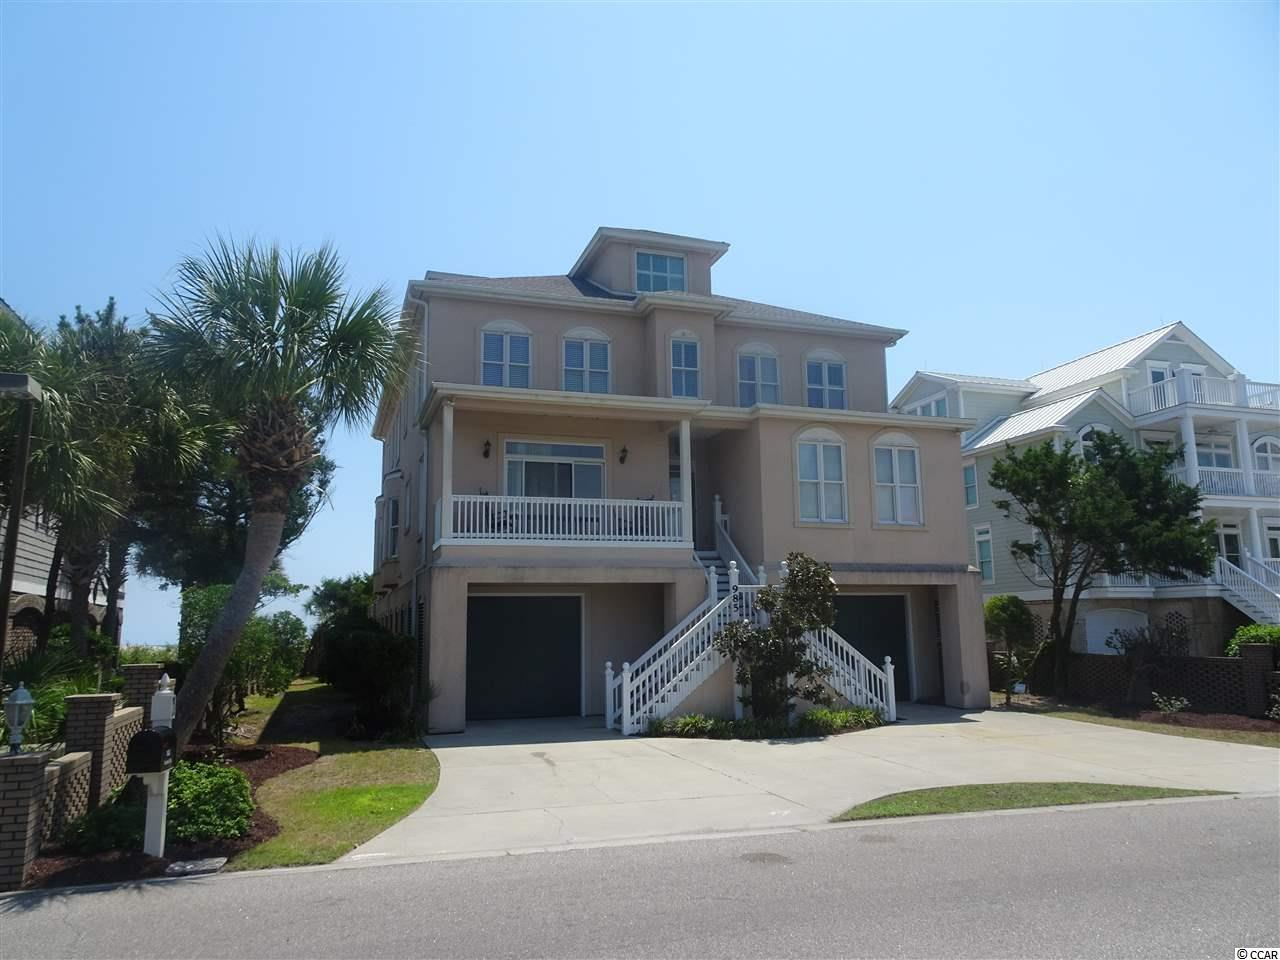 A grand beach house at a tremendous value, just waiting for the right buyer to complete renovation to your own needs and dreams.  985 Norris Dr. is located in the prestigious community of The Peninsula at Inlet Point on the south end of South Litchfield Beach. Located direct ocean front and backing to the Inlet with shared dock, 985 Norris boasts great views from almost every room. A rare find with potential of up to 9 bedrooms with 8.5 baths. New roof, New HVAC, and New Water Heaters plus complete interior cleaning and restoration from water damage complete in 2018/2019. However, renovation is not complete with 2nd and 3rd level flooring and final stucco repair or replacement to be done by Buyer. Great rental potential, forecast of rental income available. All dimensions are approx and should be verified by the Buyer.